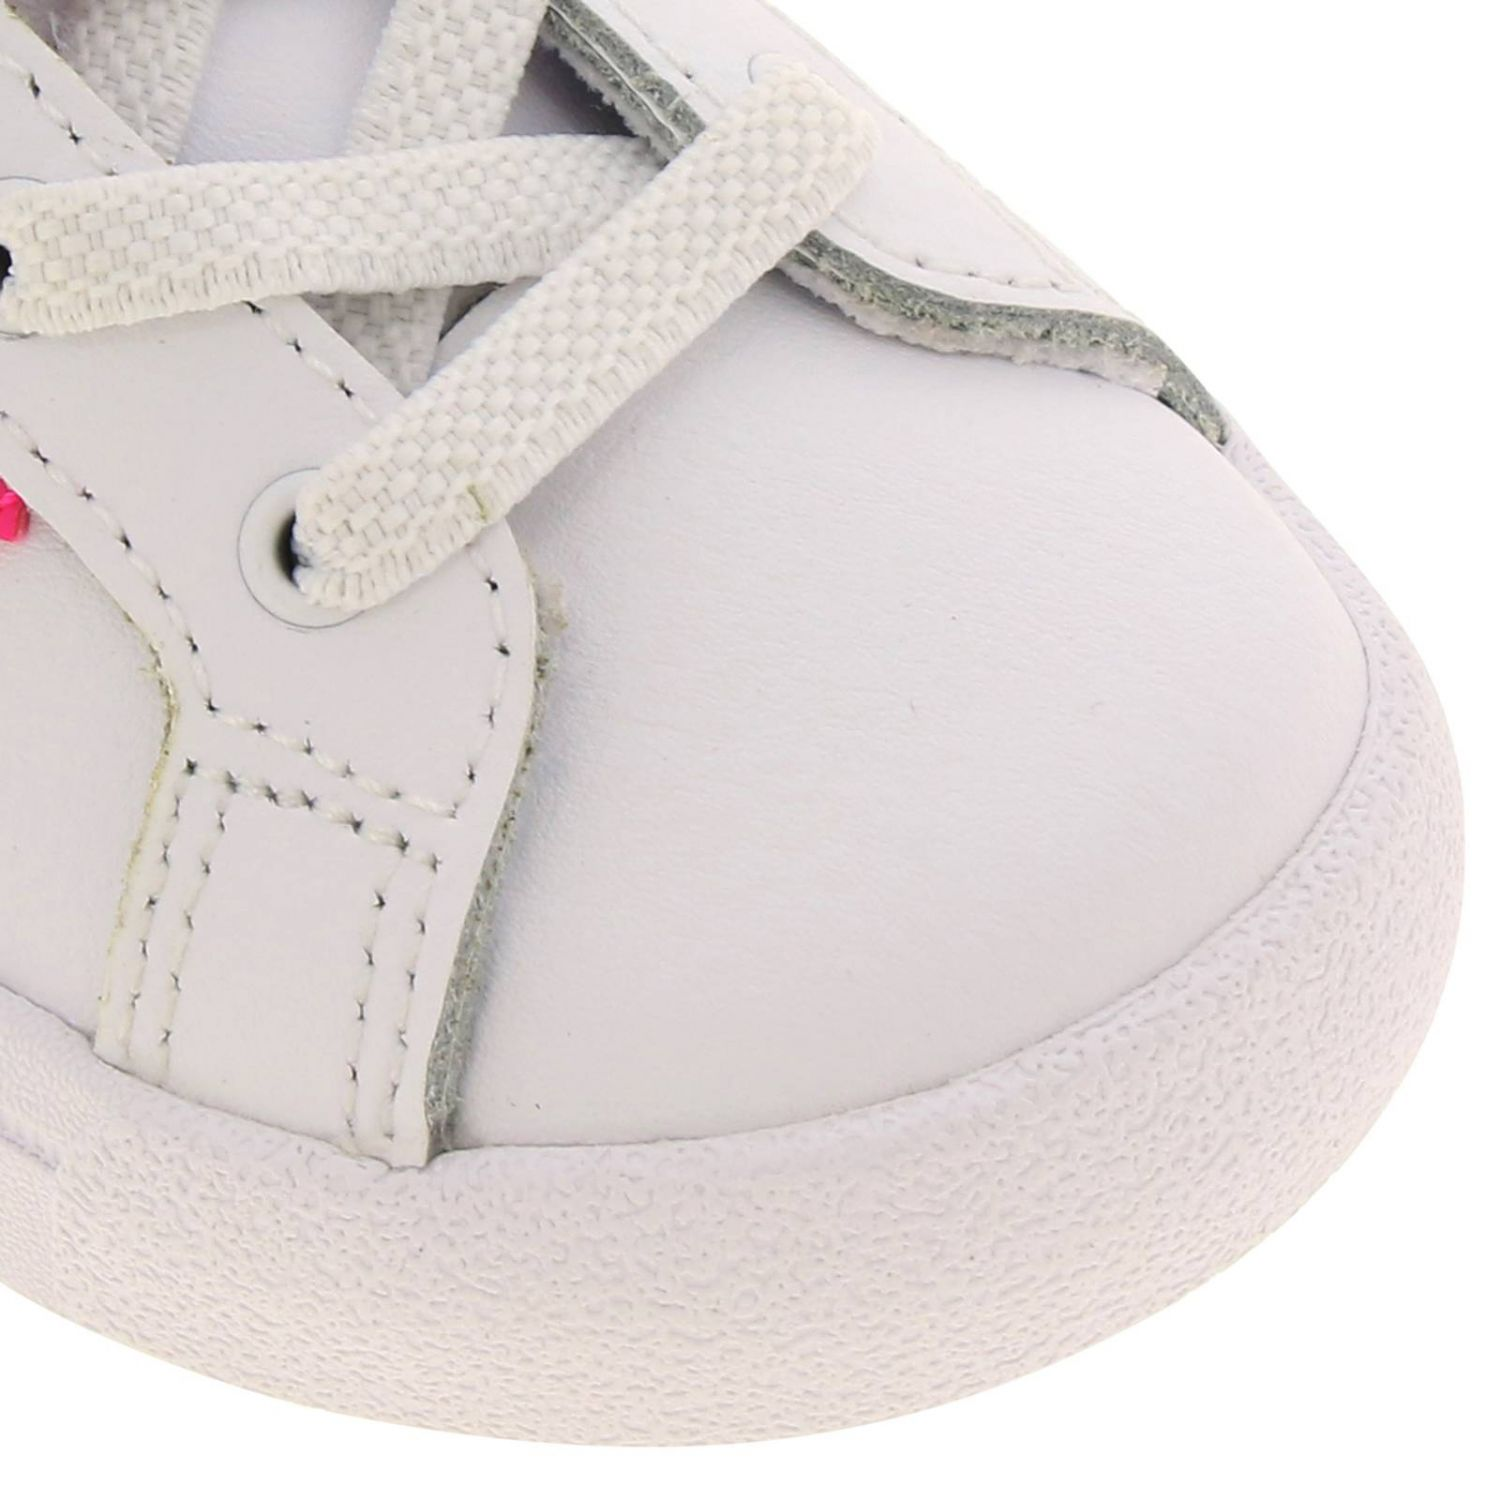 Shoes Adidas Originals: Adidas Originals Coast star sneakers in leather with contrasting bands white 3